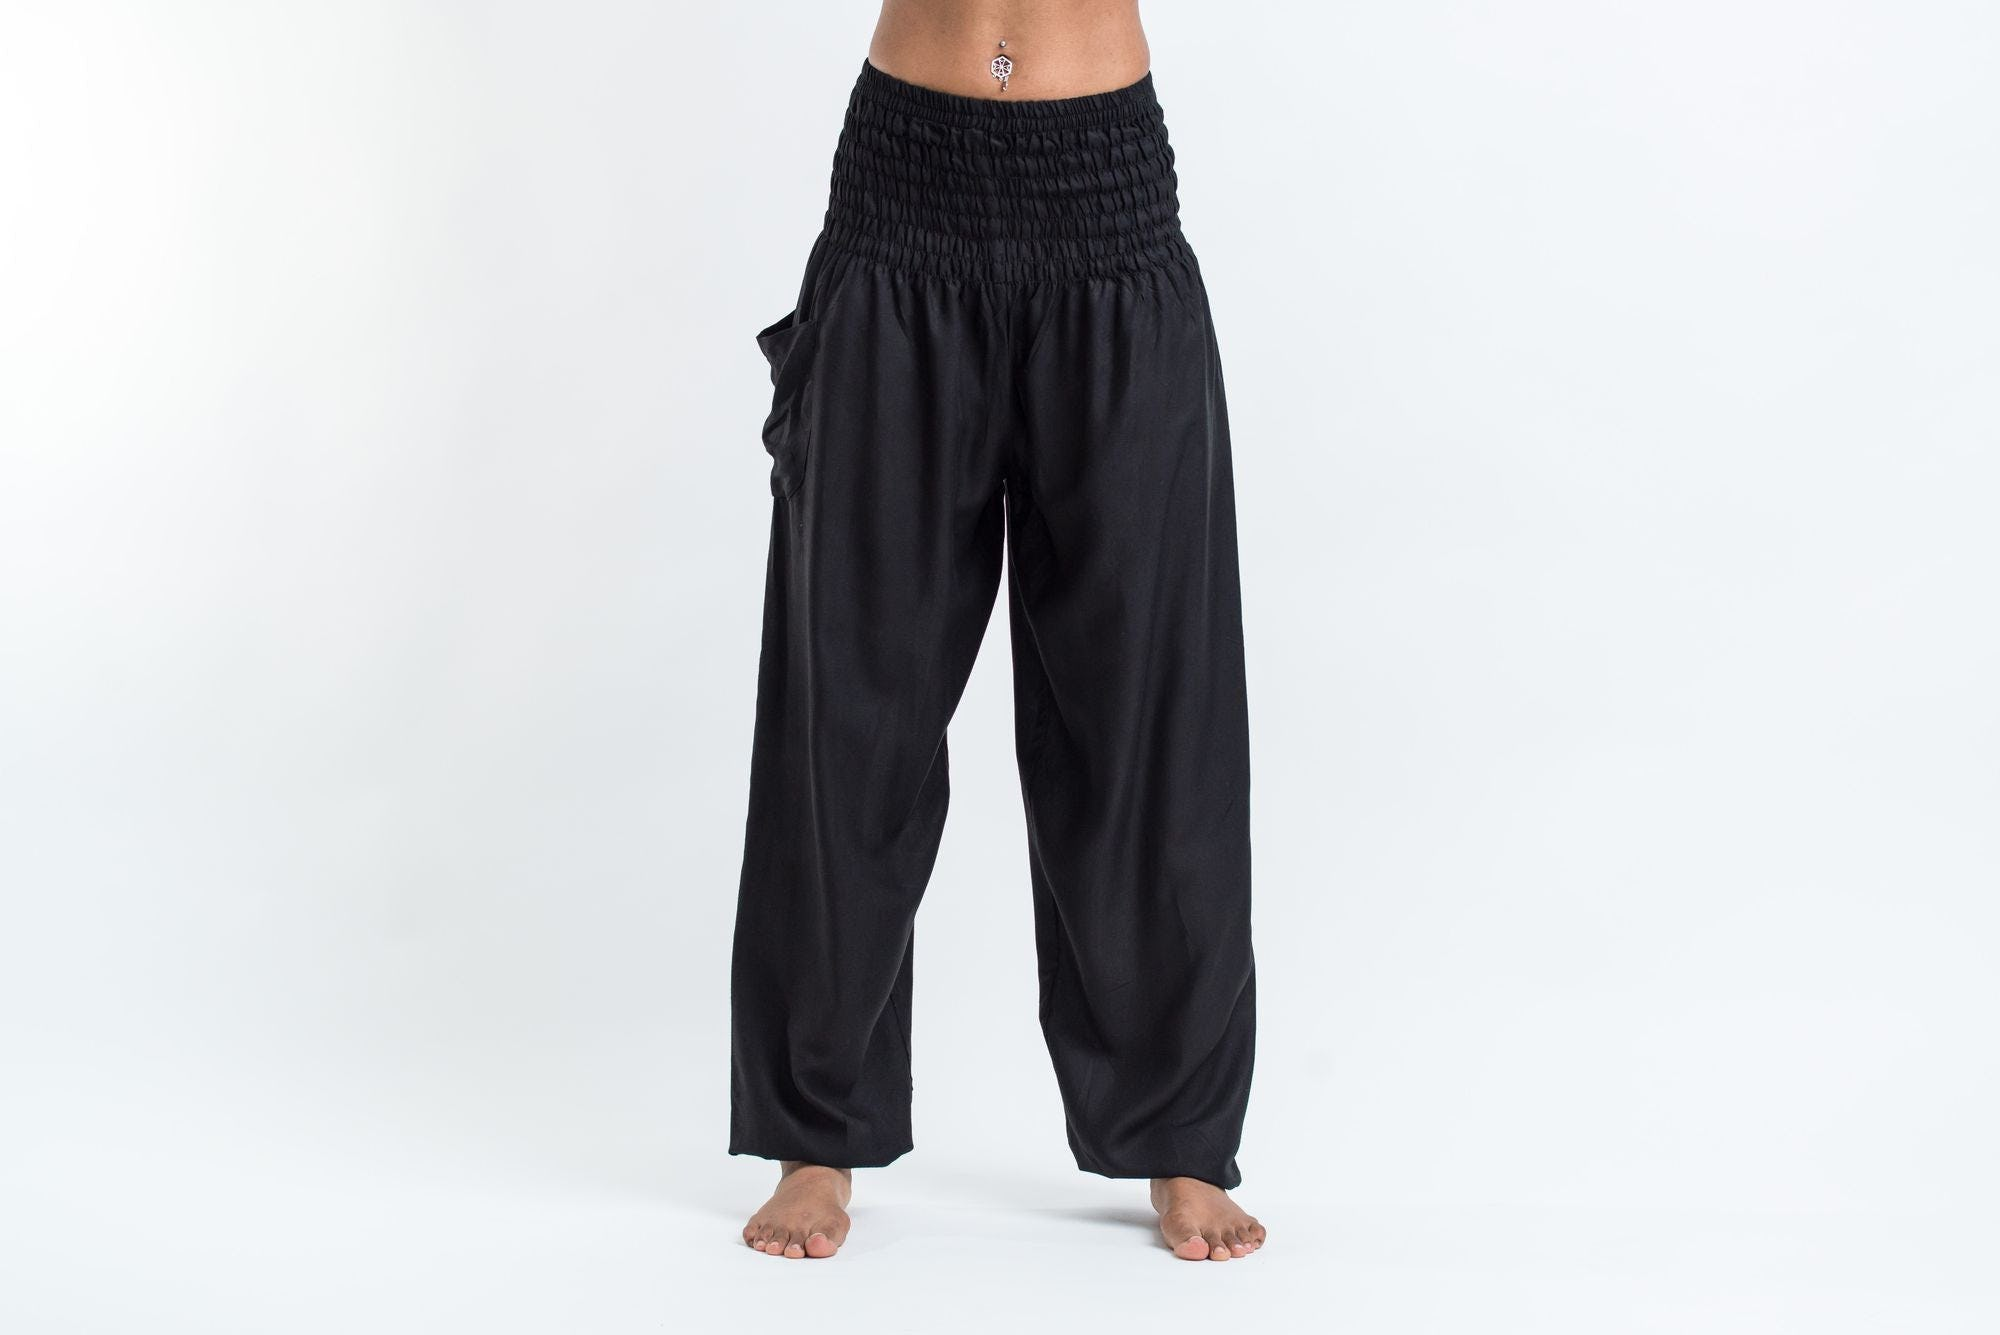 Find great deals on eBay for harem pants black. Shop with confidence.